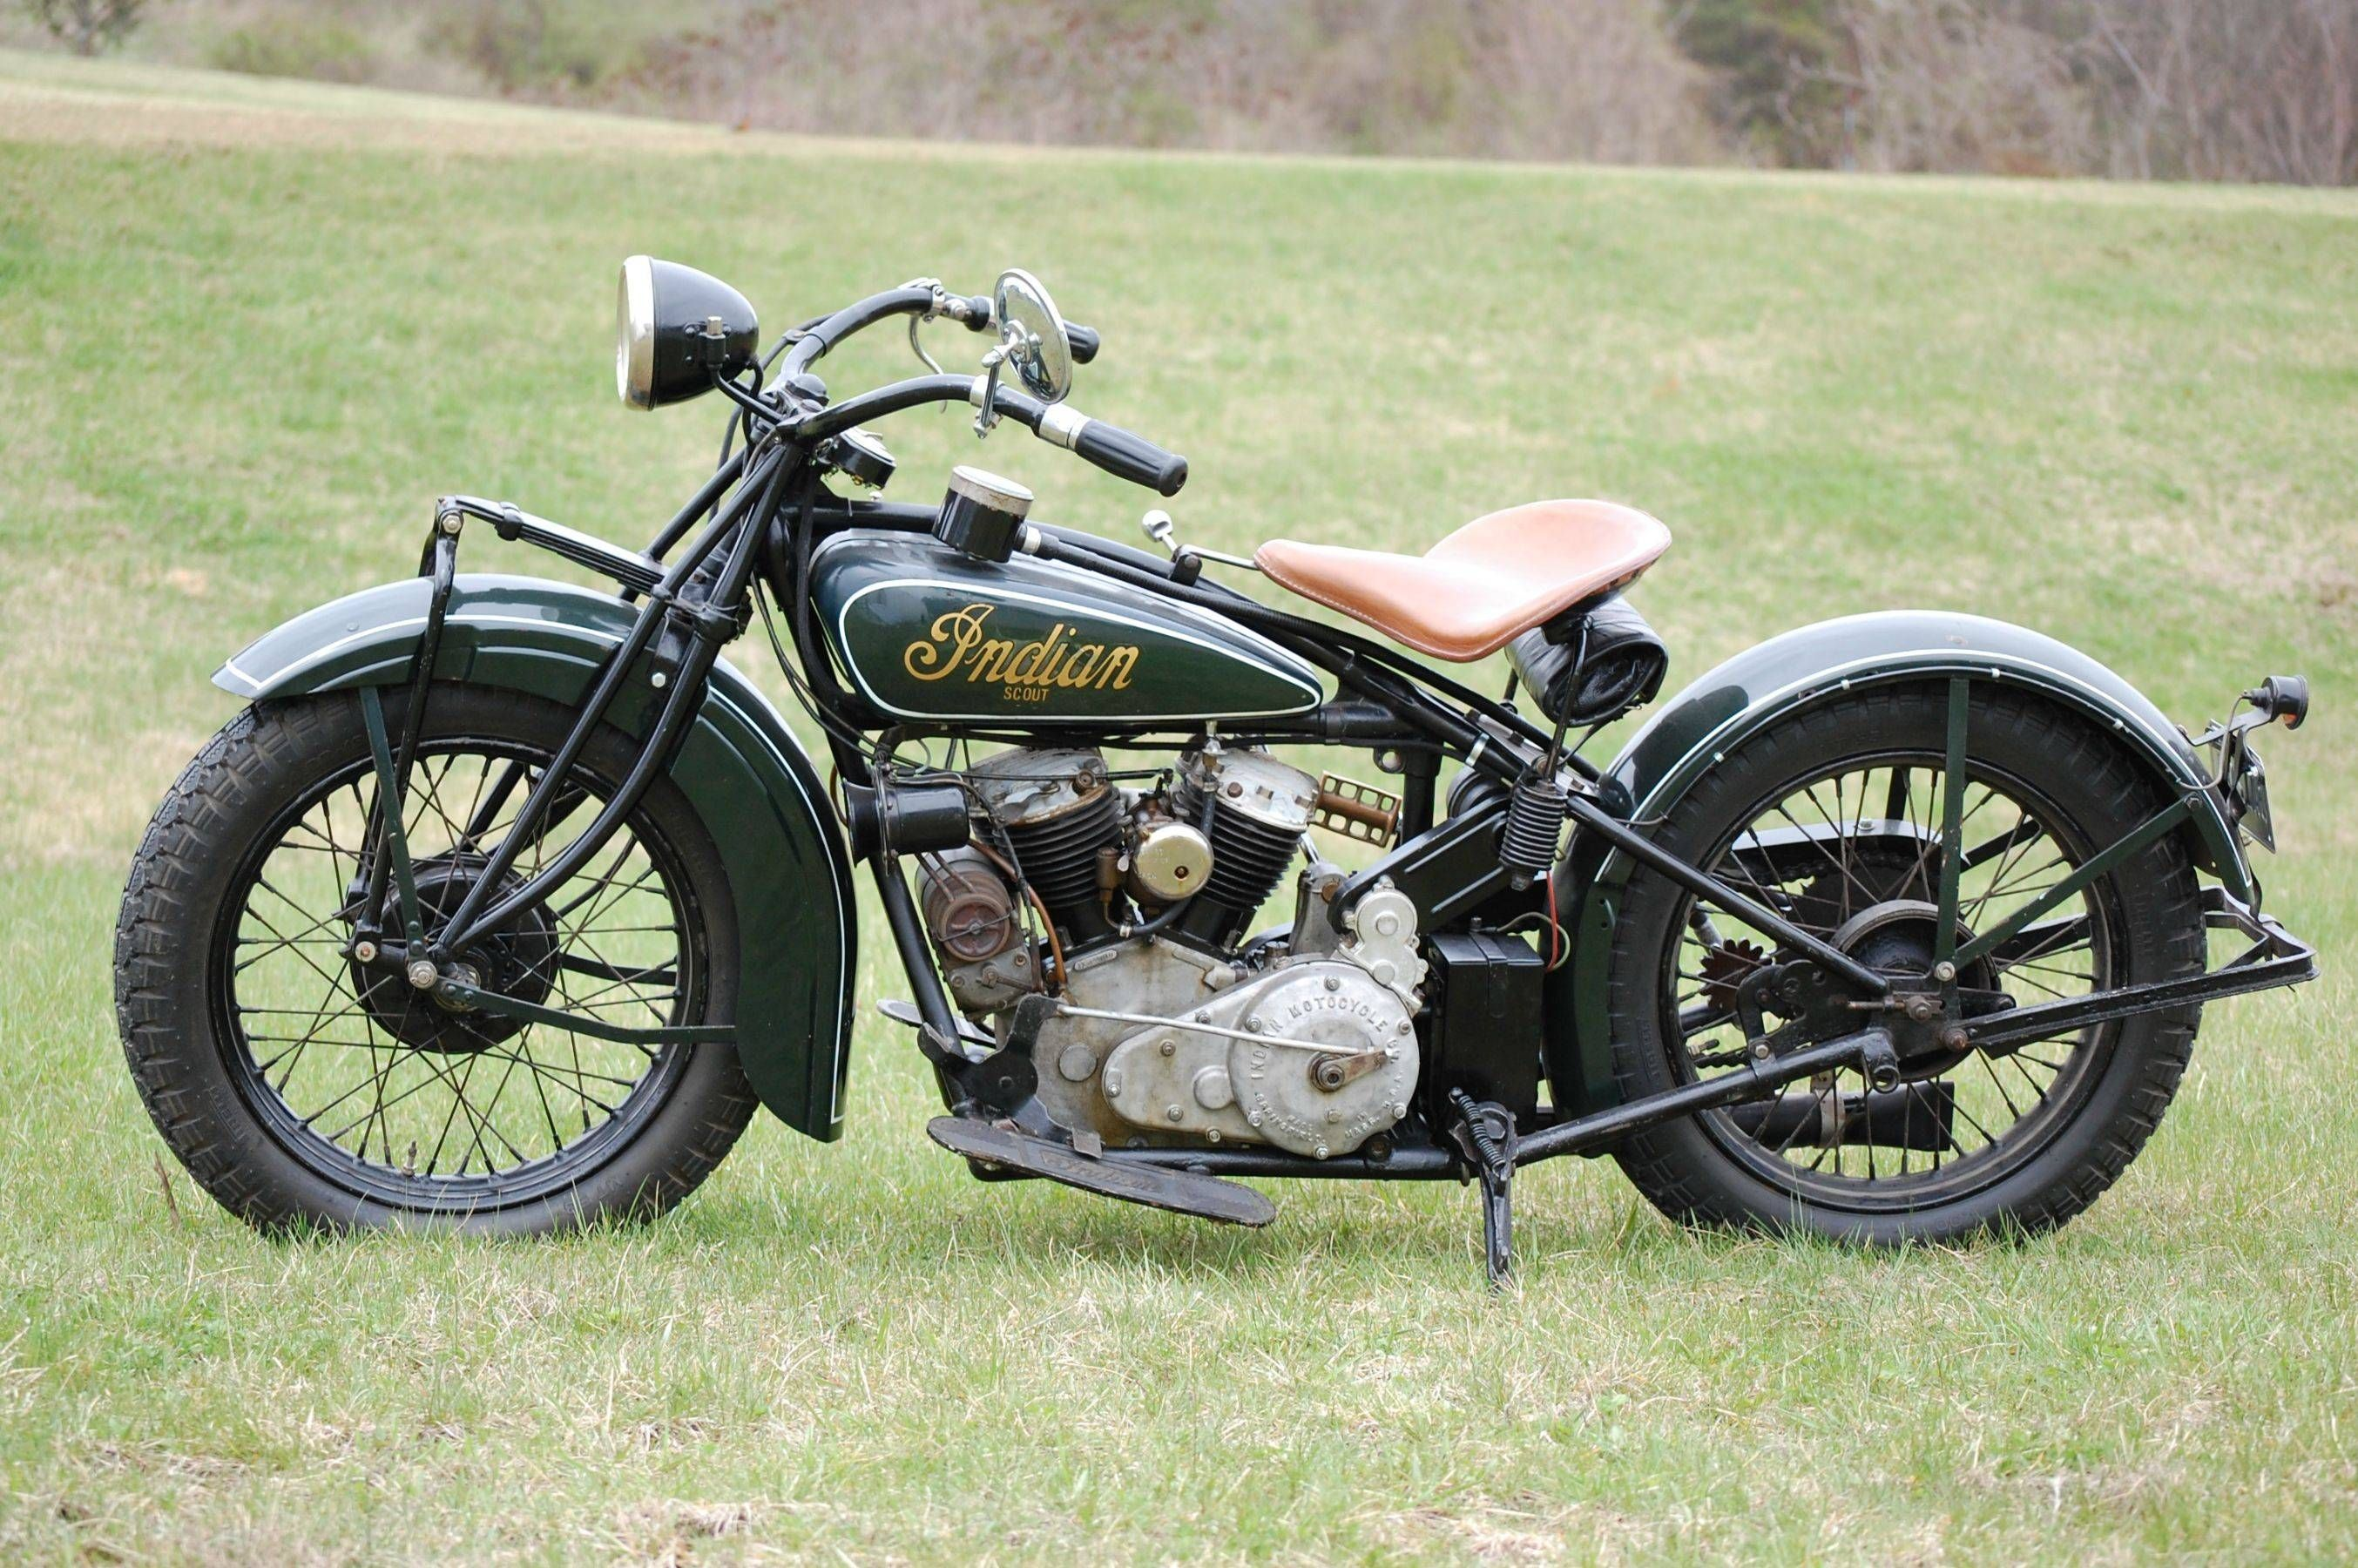 Indian Motorcycle Motorcycles Vintage Indian Southwest Vintage Cycle Southwest Vintage Cycle Indian A Indian Motorcycle Vintage Indian Motorcycles Motorcycle